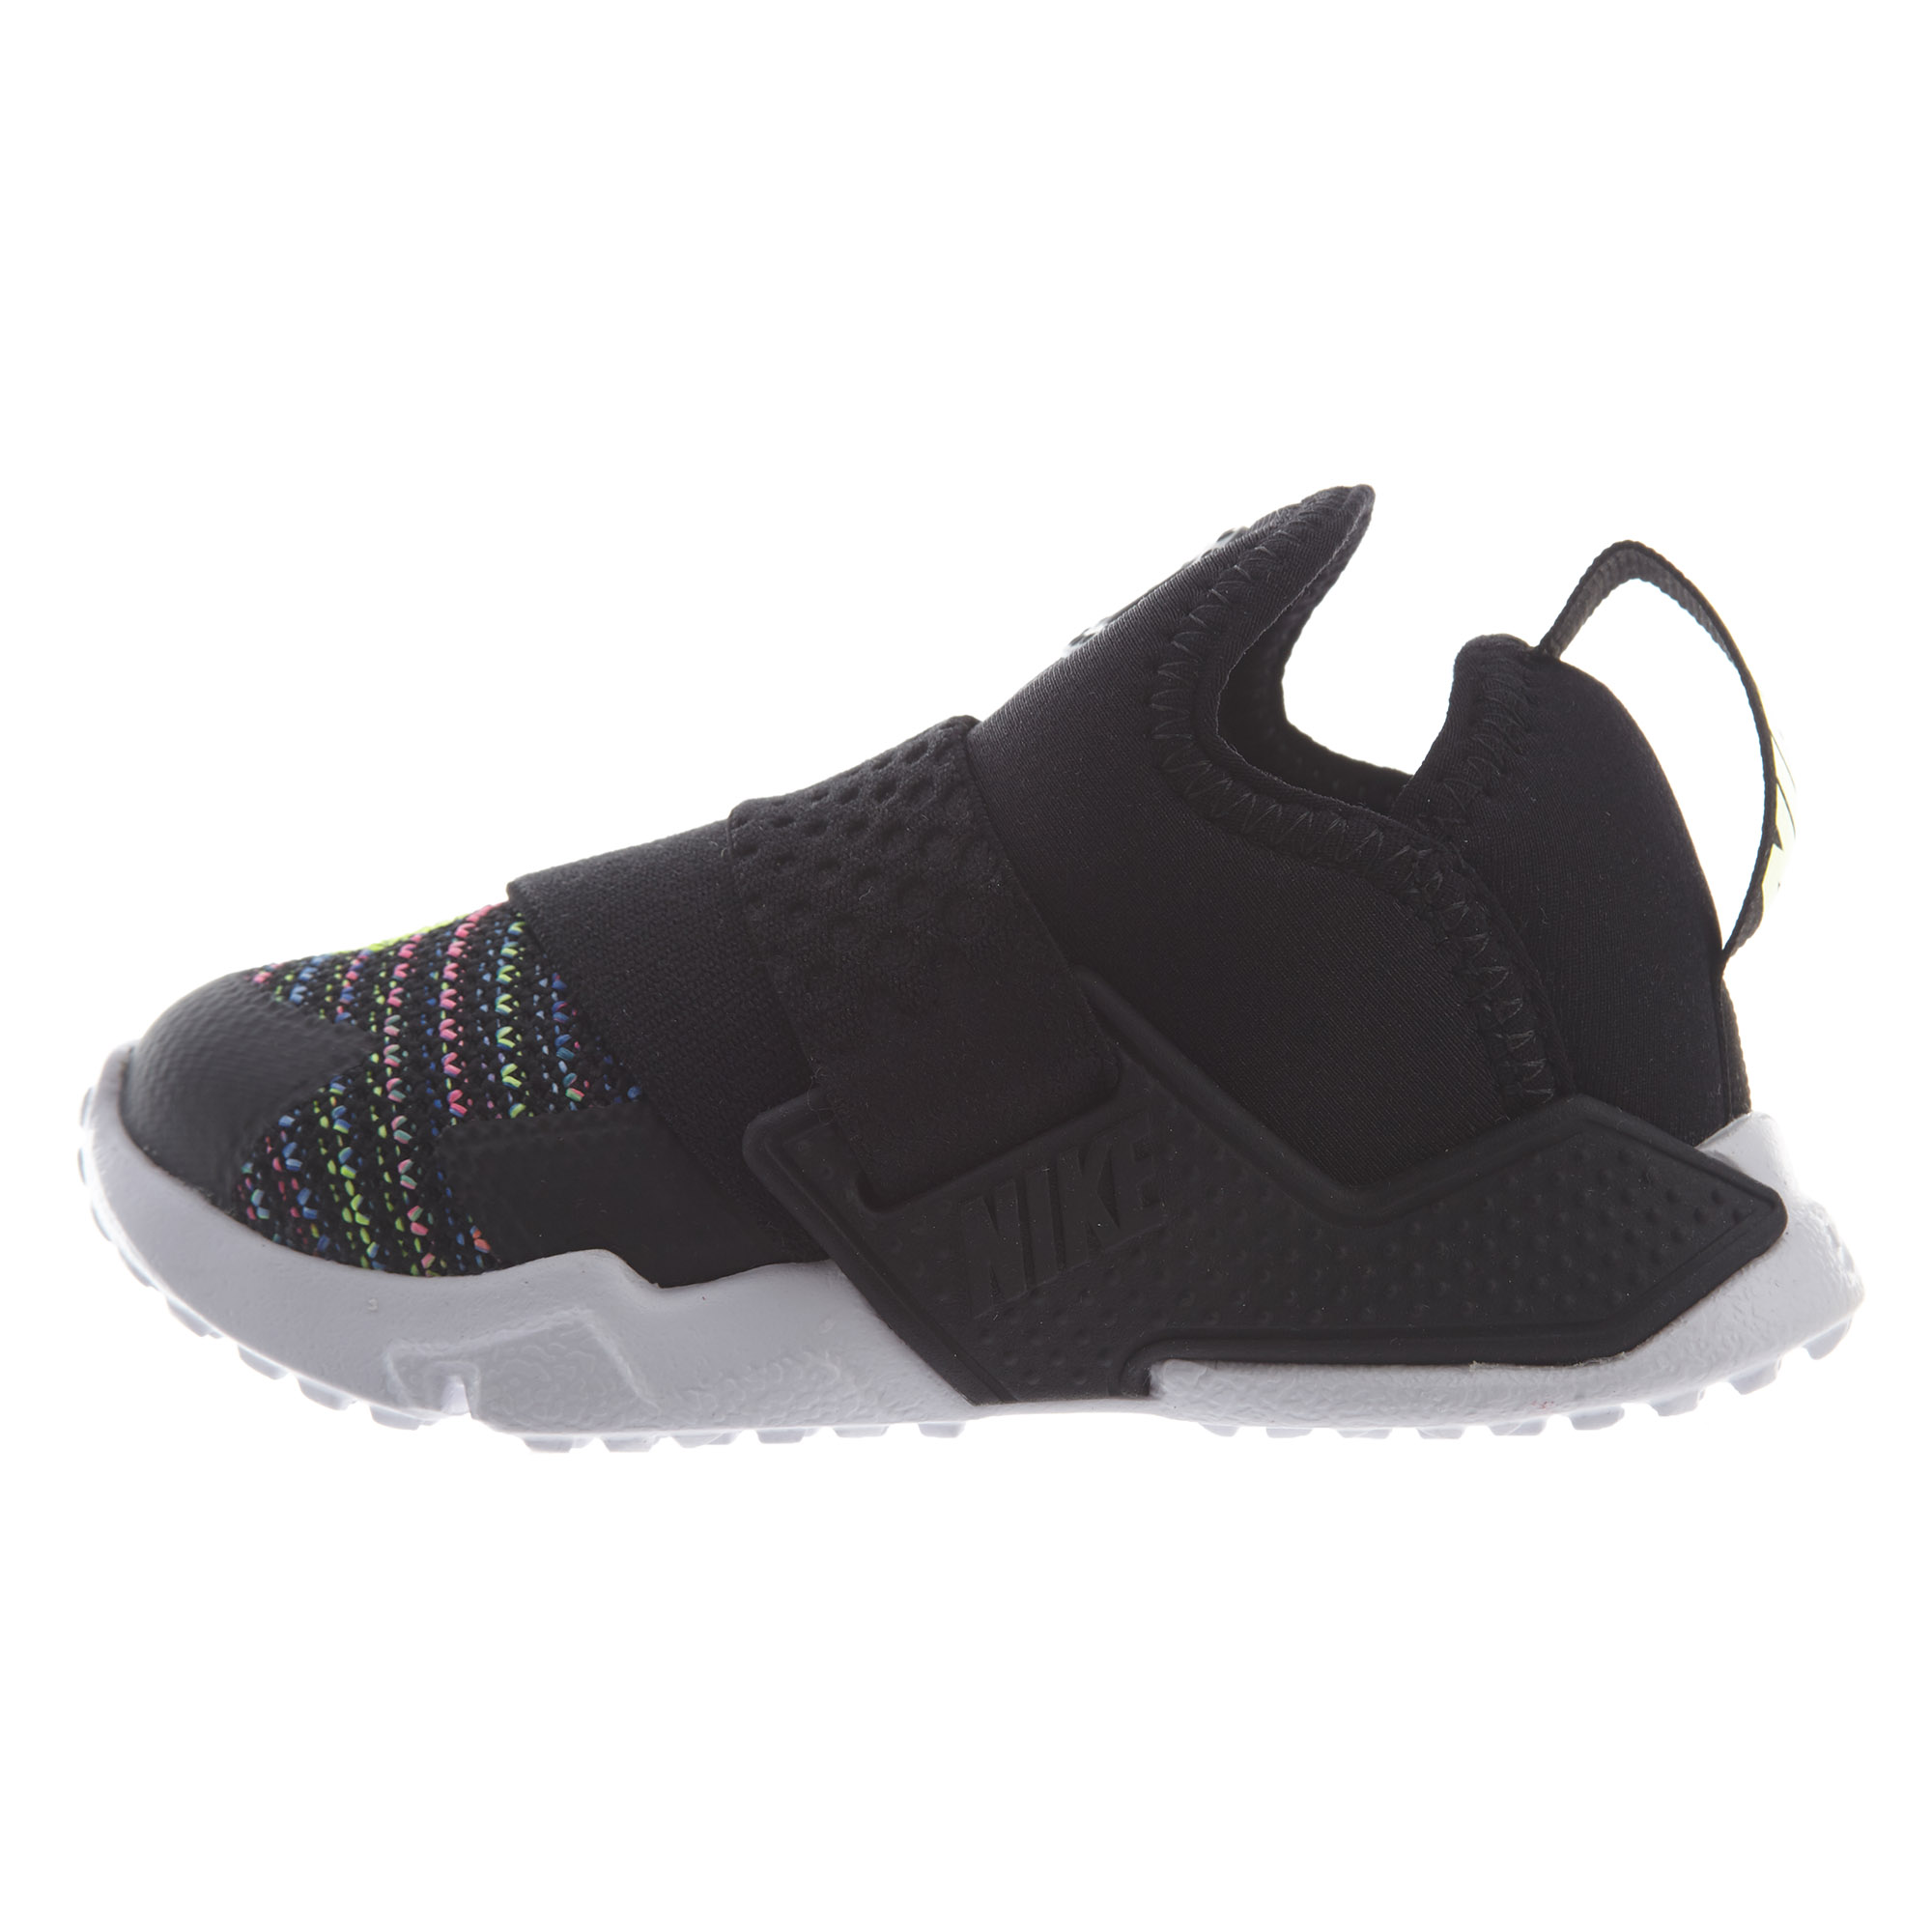 9b0ba1867e93e Details about Nike Toddlers Huarache Extreme SE Running Shoes AQ9049-002